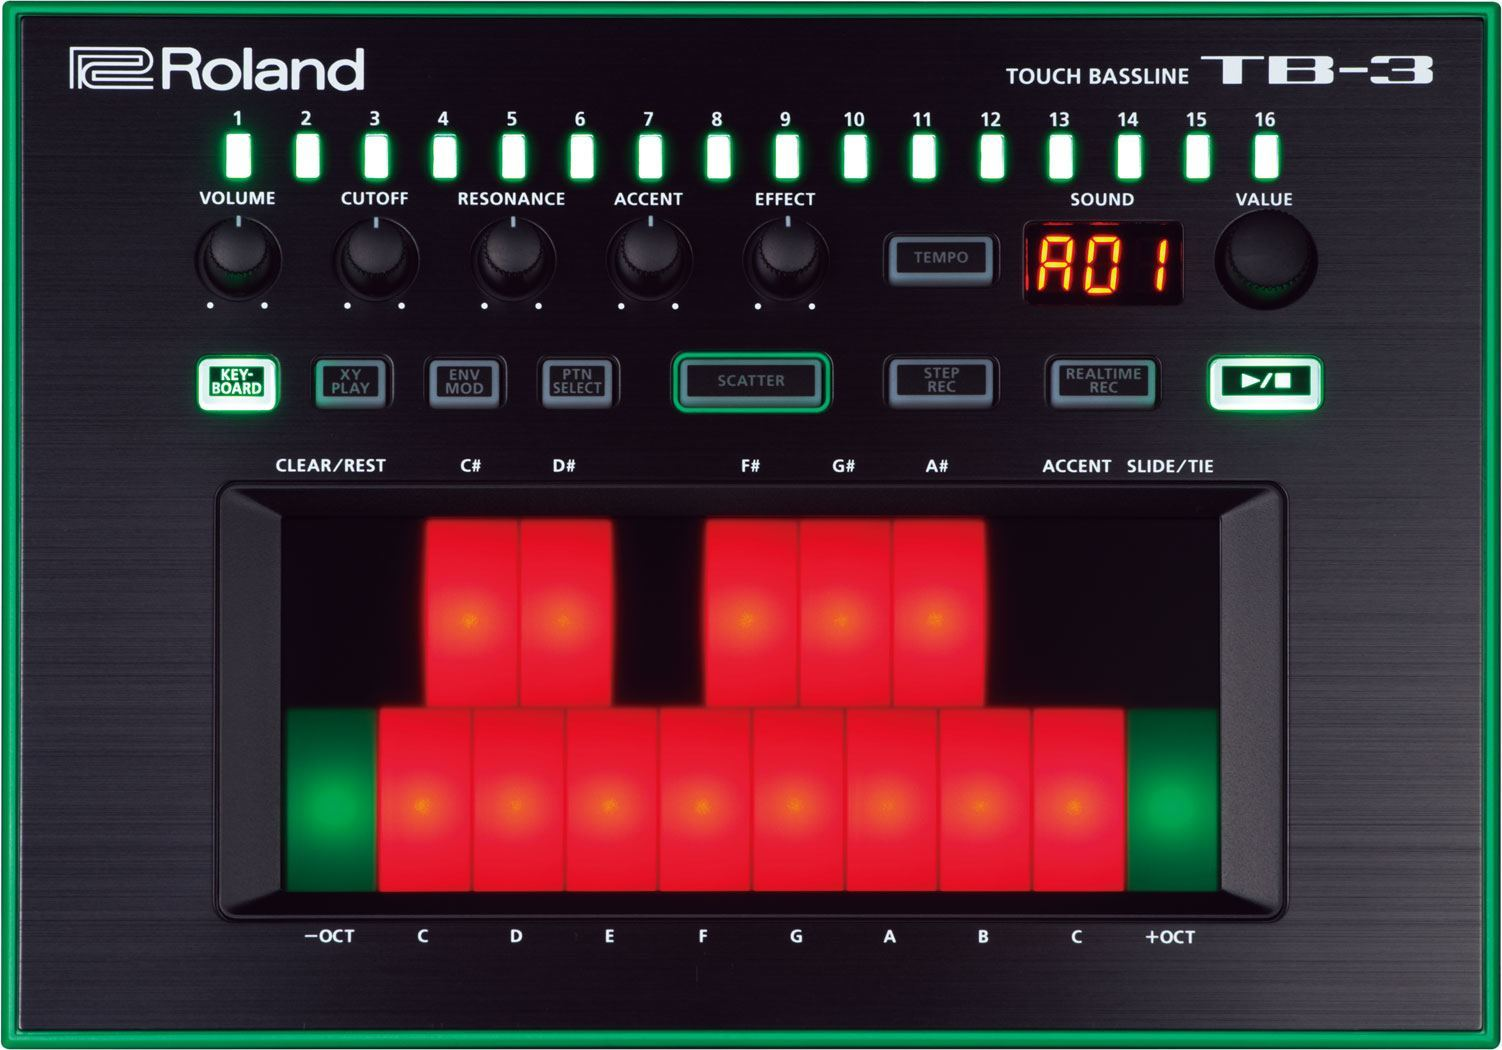 rolan Get the guaranteed lowest price on roland musical gear free shipping on most orders 8% back in rewards with free backstage pass membership.